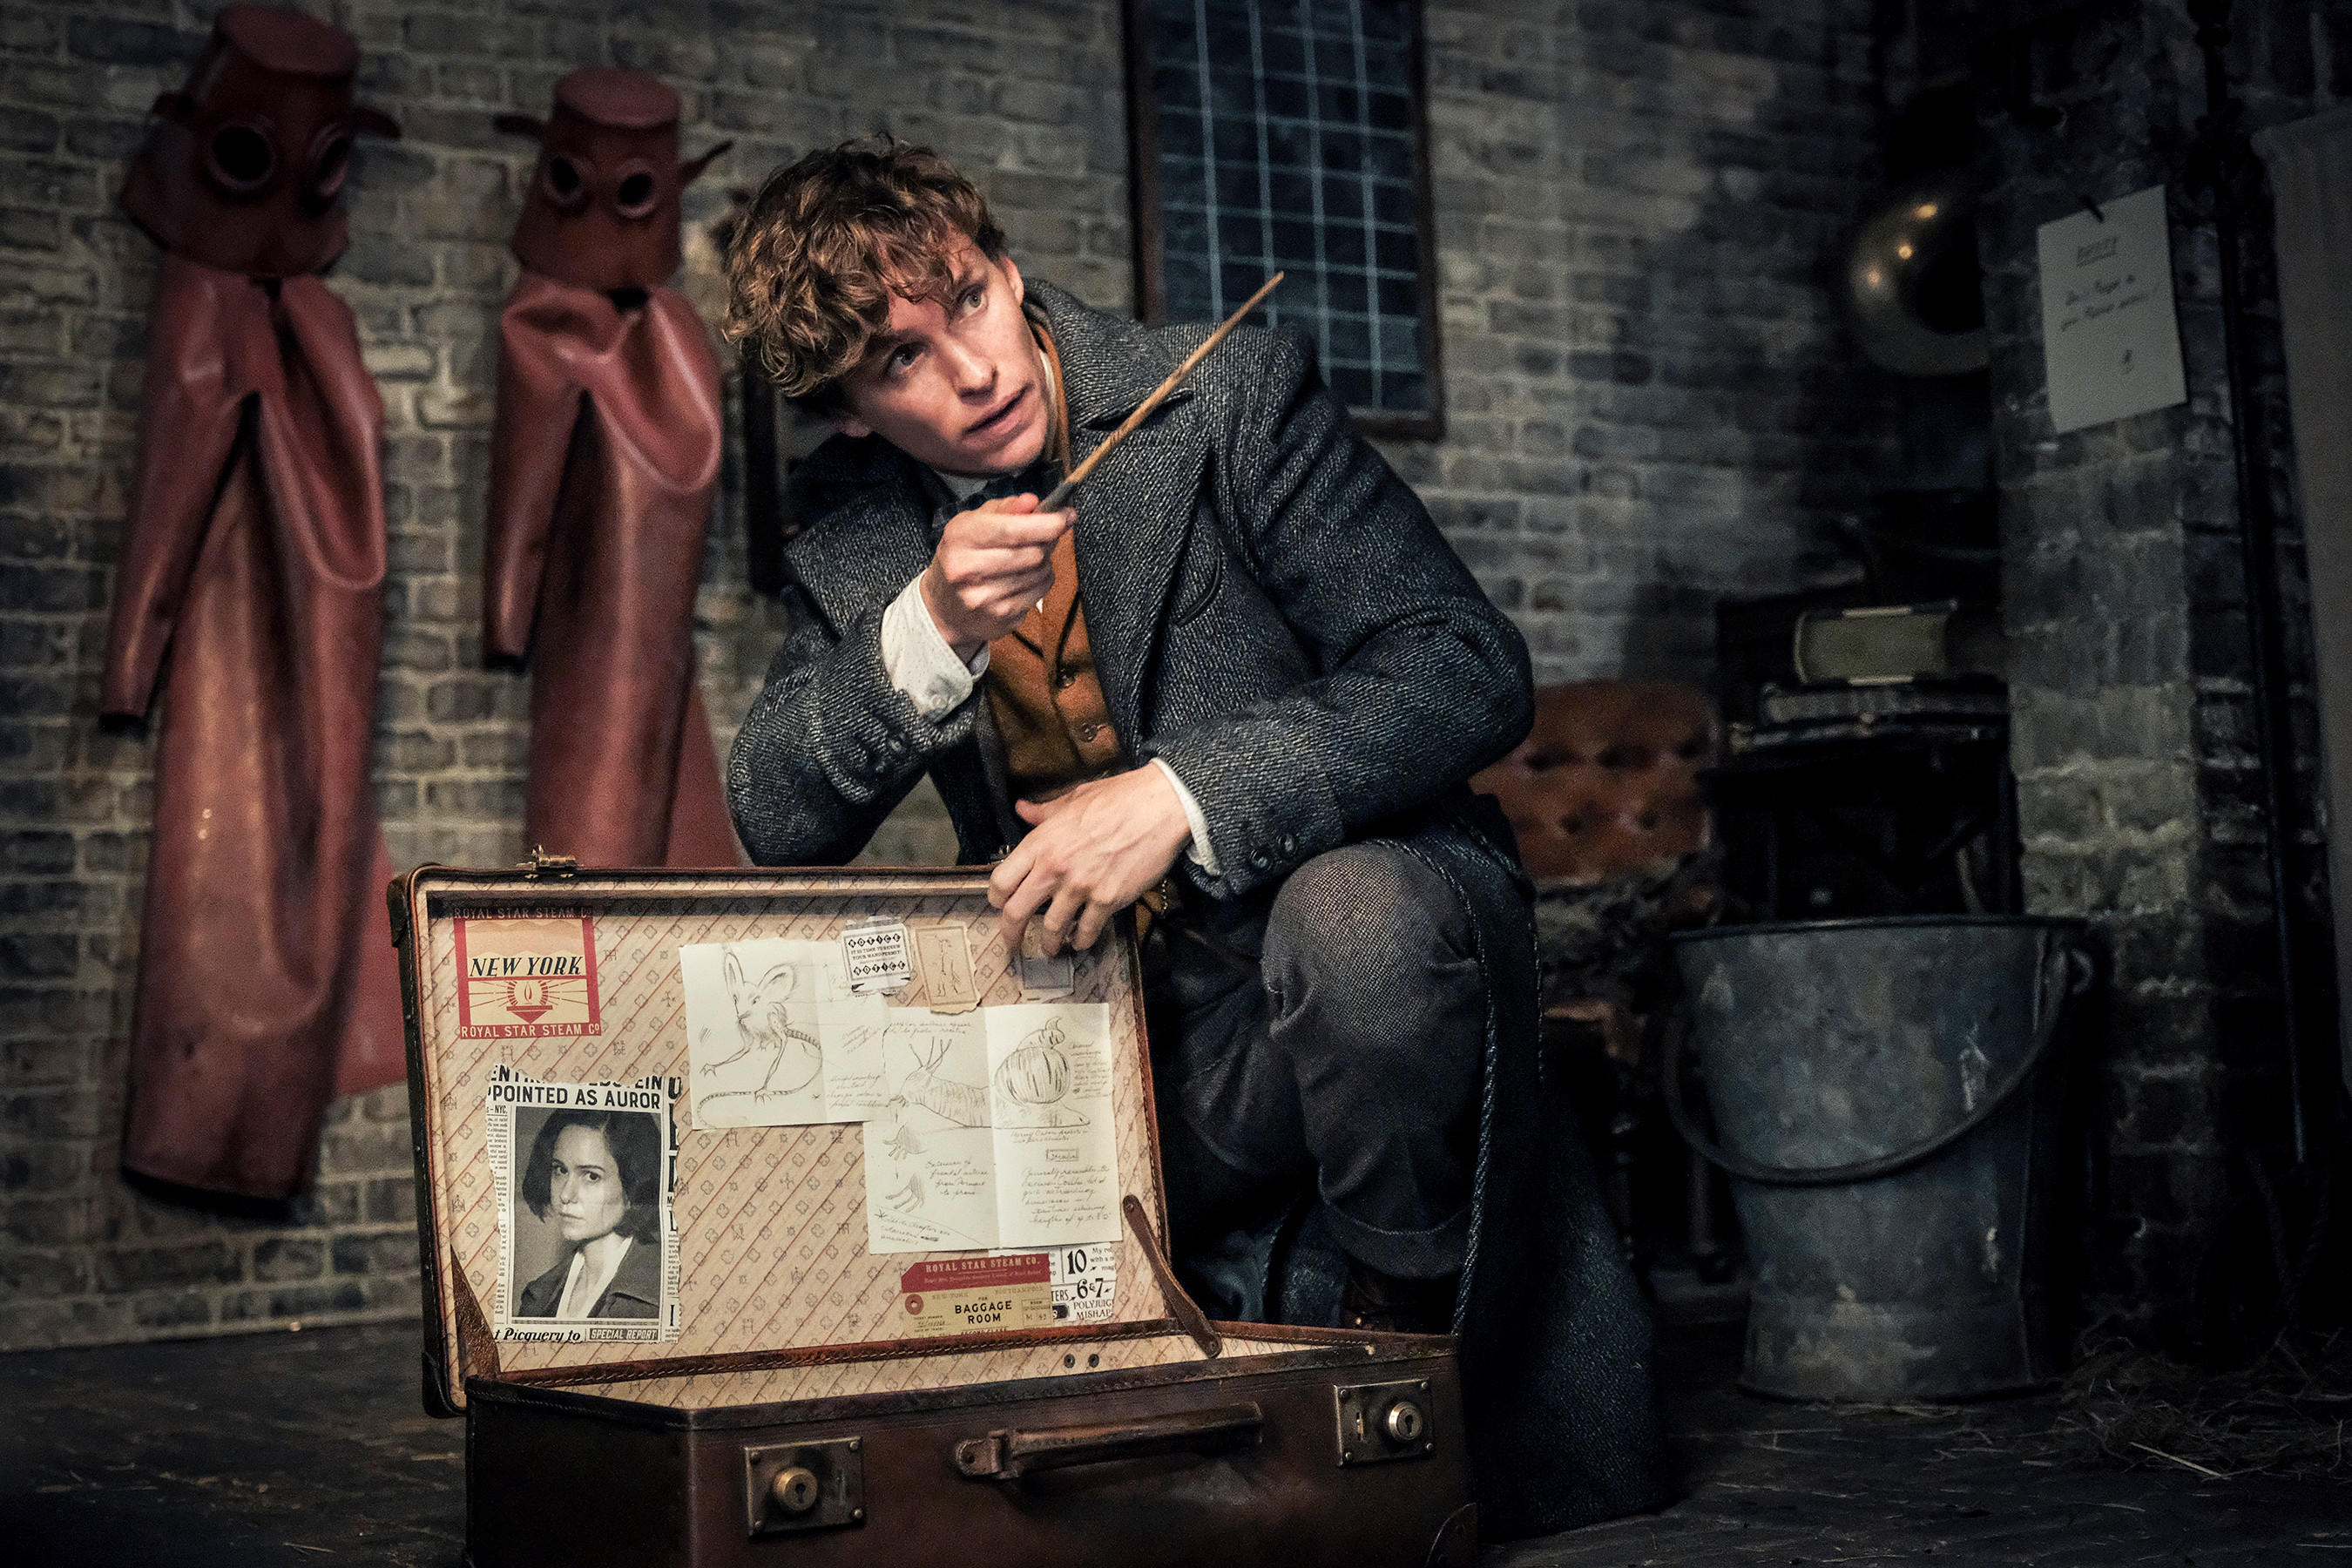 Dozens Of 'Harry Potter' Connections Can't Save 'Fantastic Beasts: The Crimes of Grindelwald'